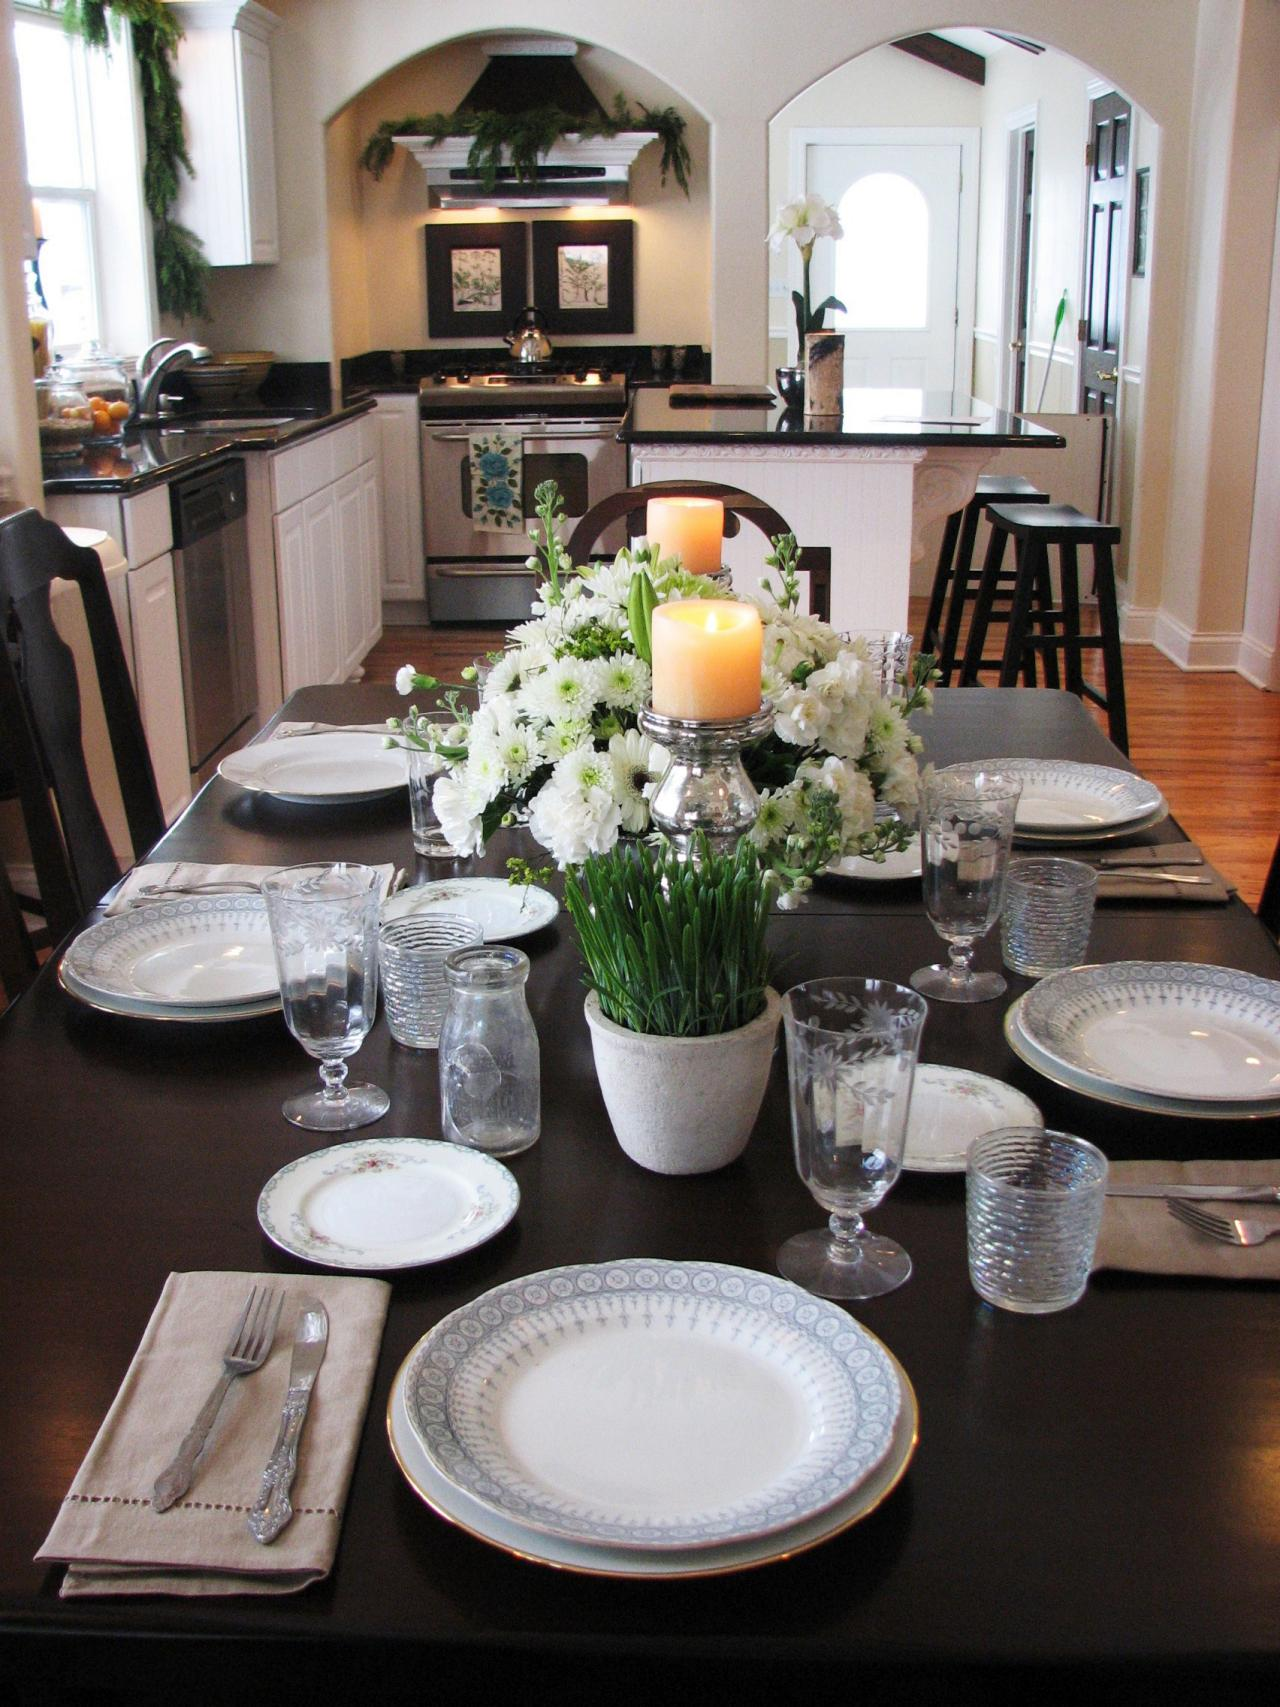 Kitchen table centerpiece design ideas hgtv pictures hgtv for Modern table centerpiece ideas